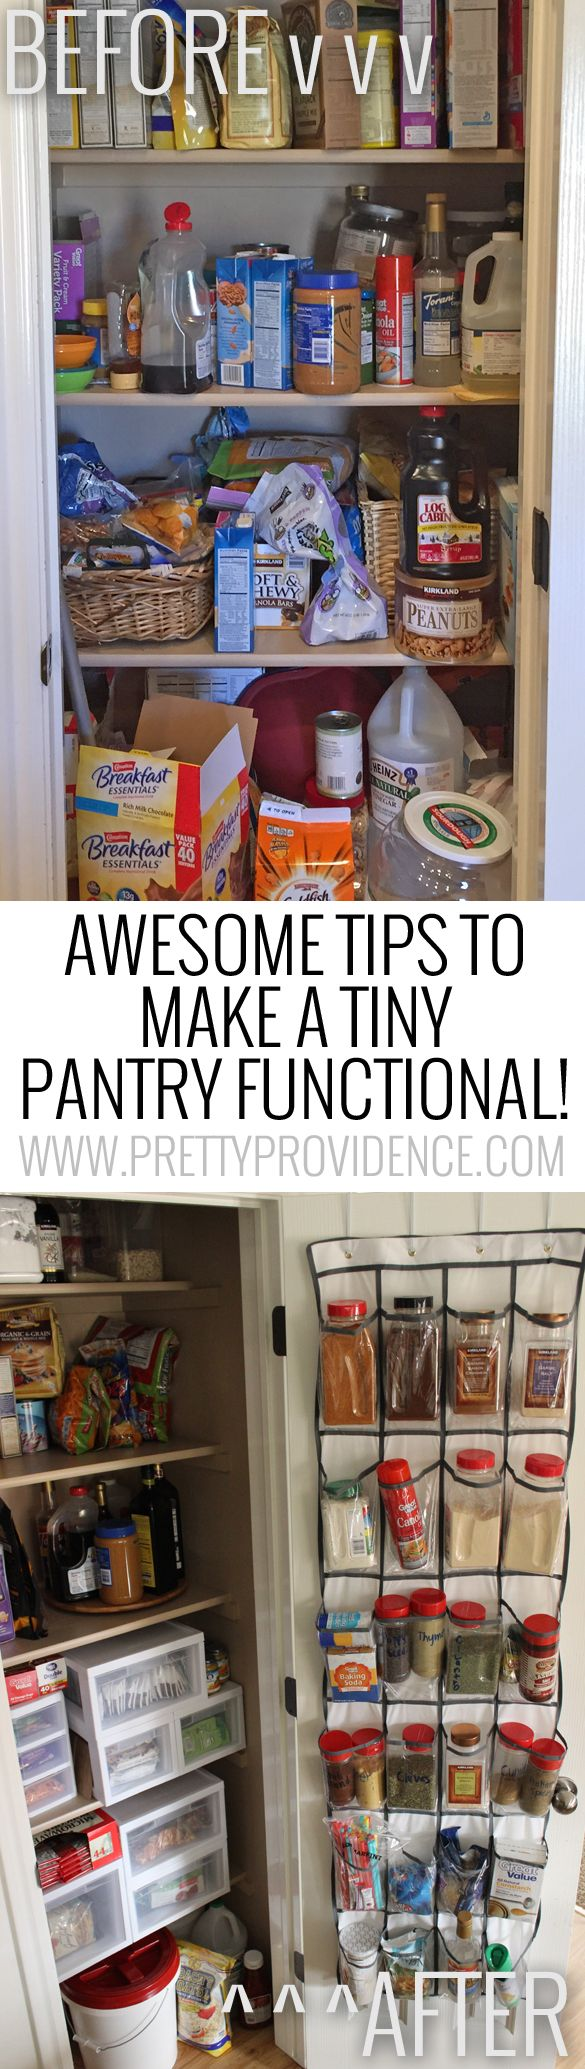 awesome tips and tricks for small pantry organization - Pantry Ideas For Small Kitchens